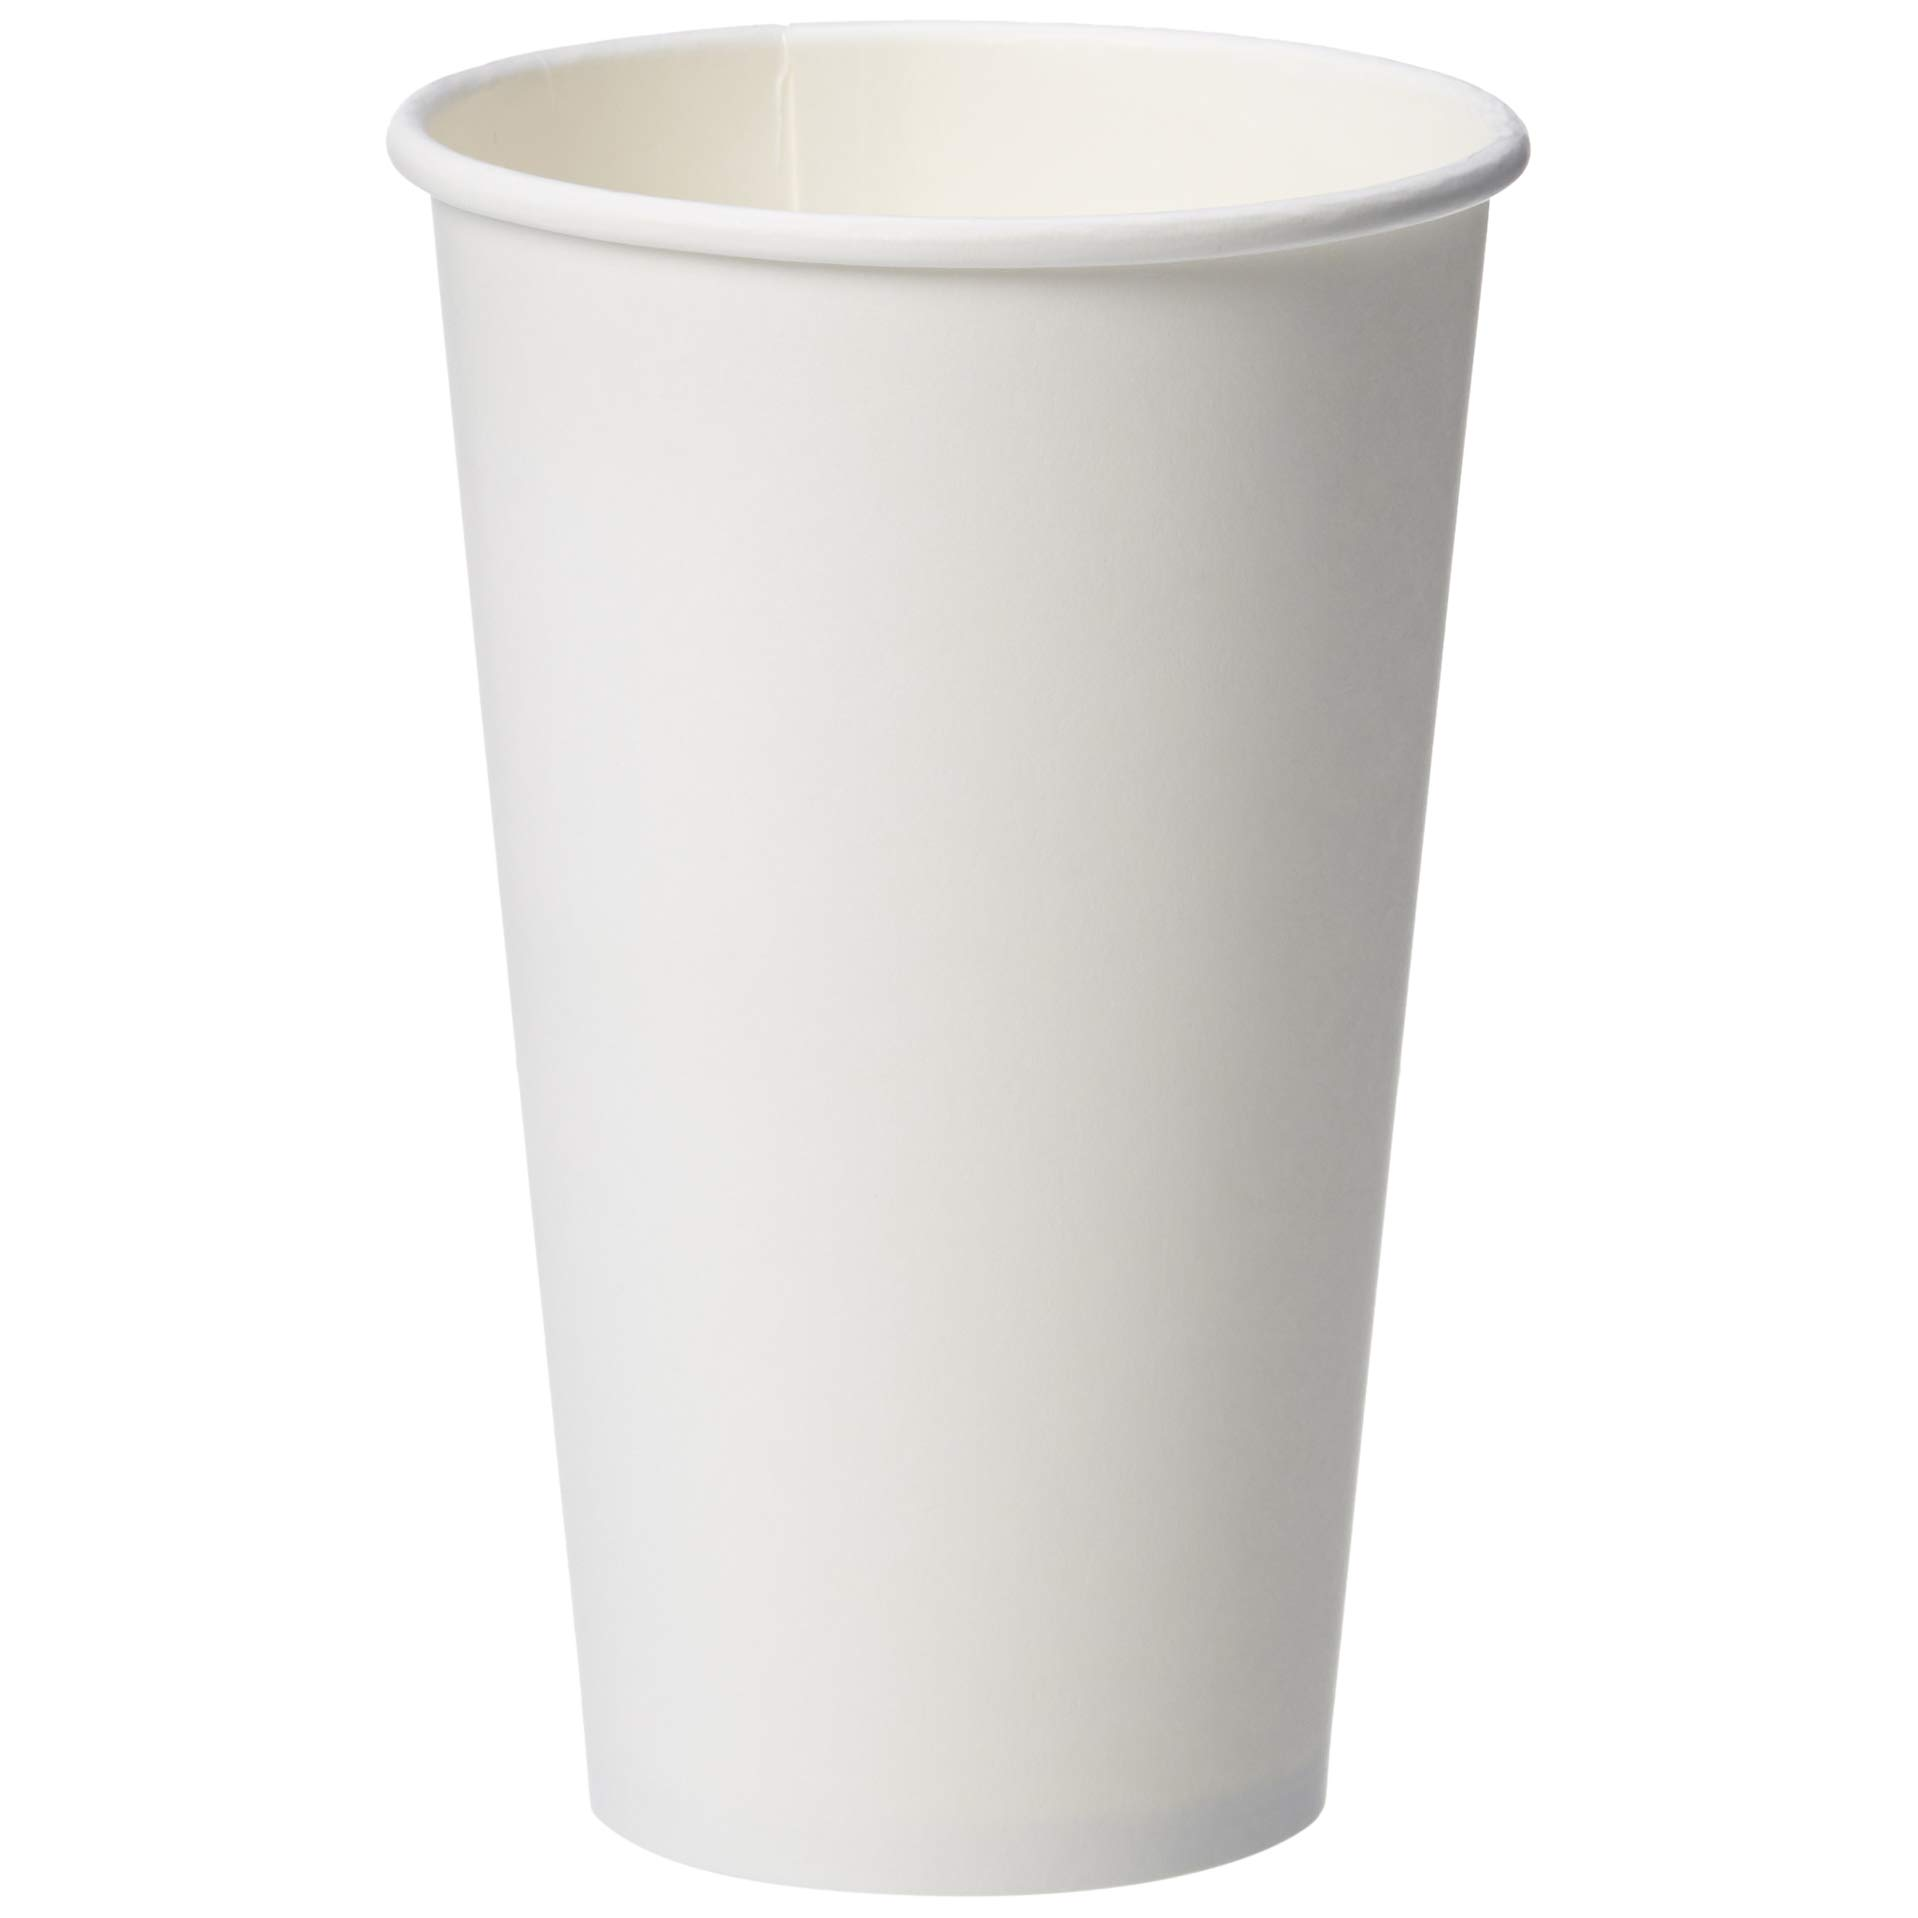 AmazonBasics Compostable PLA Laminated Hot Paper Cup, 16 oz, 1,000-Count